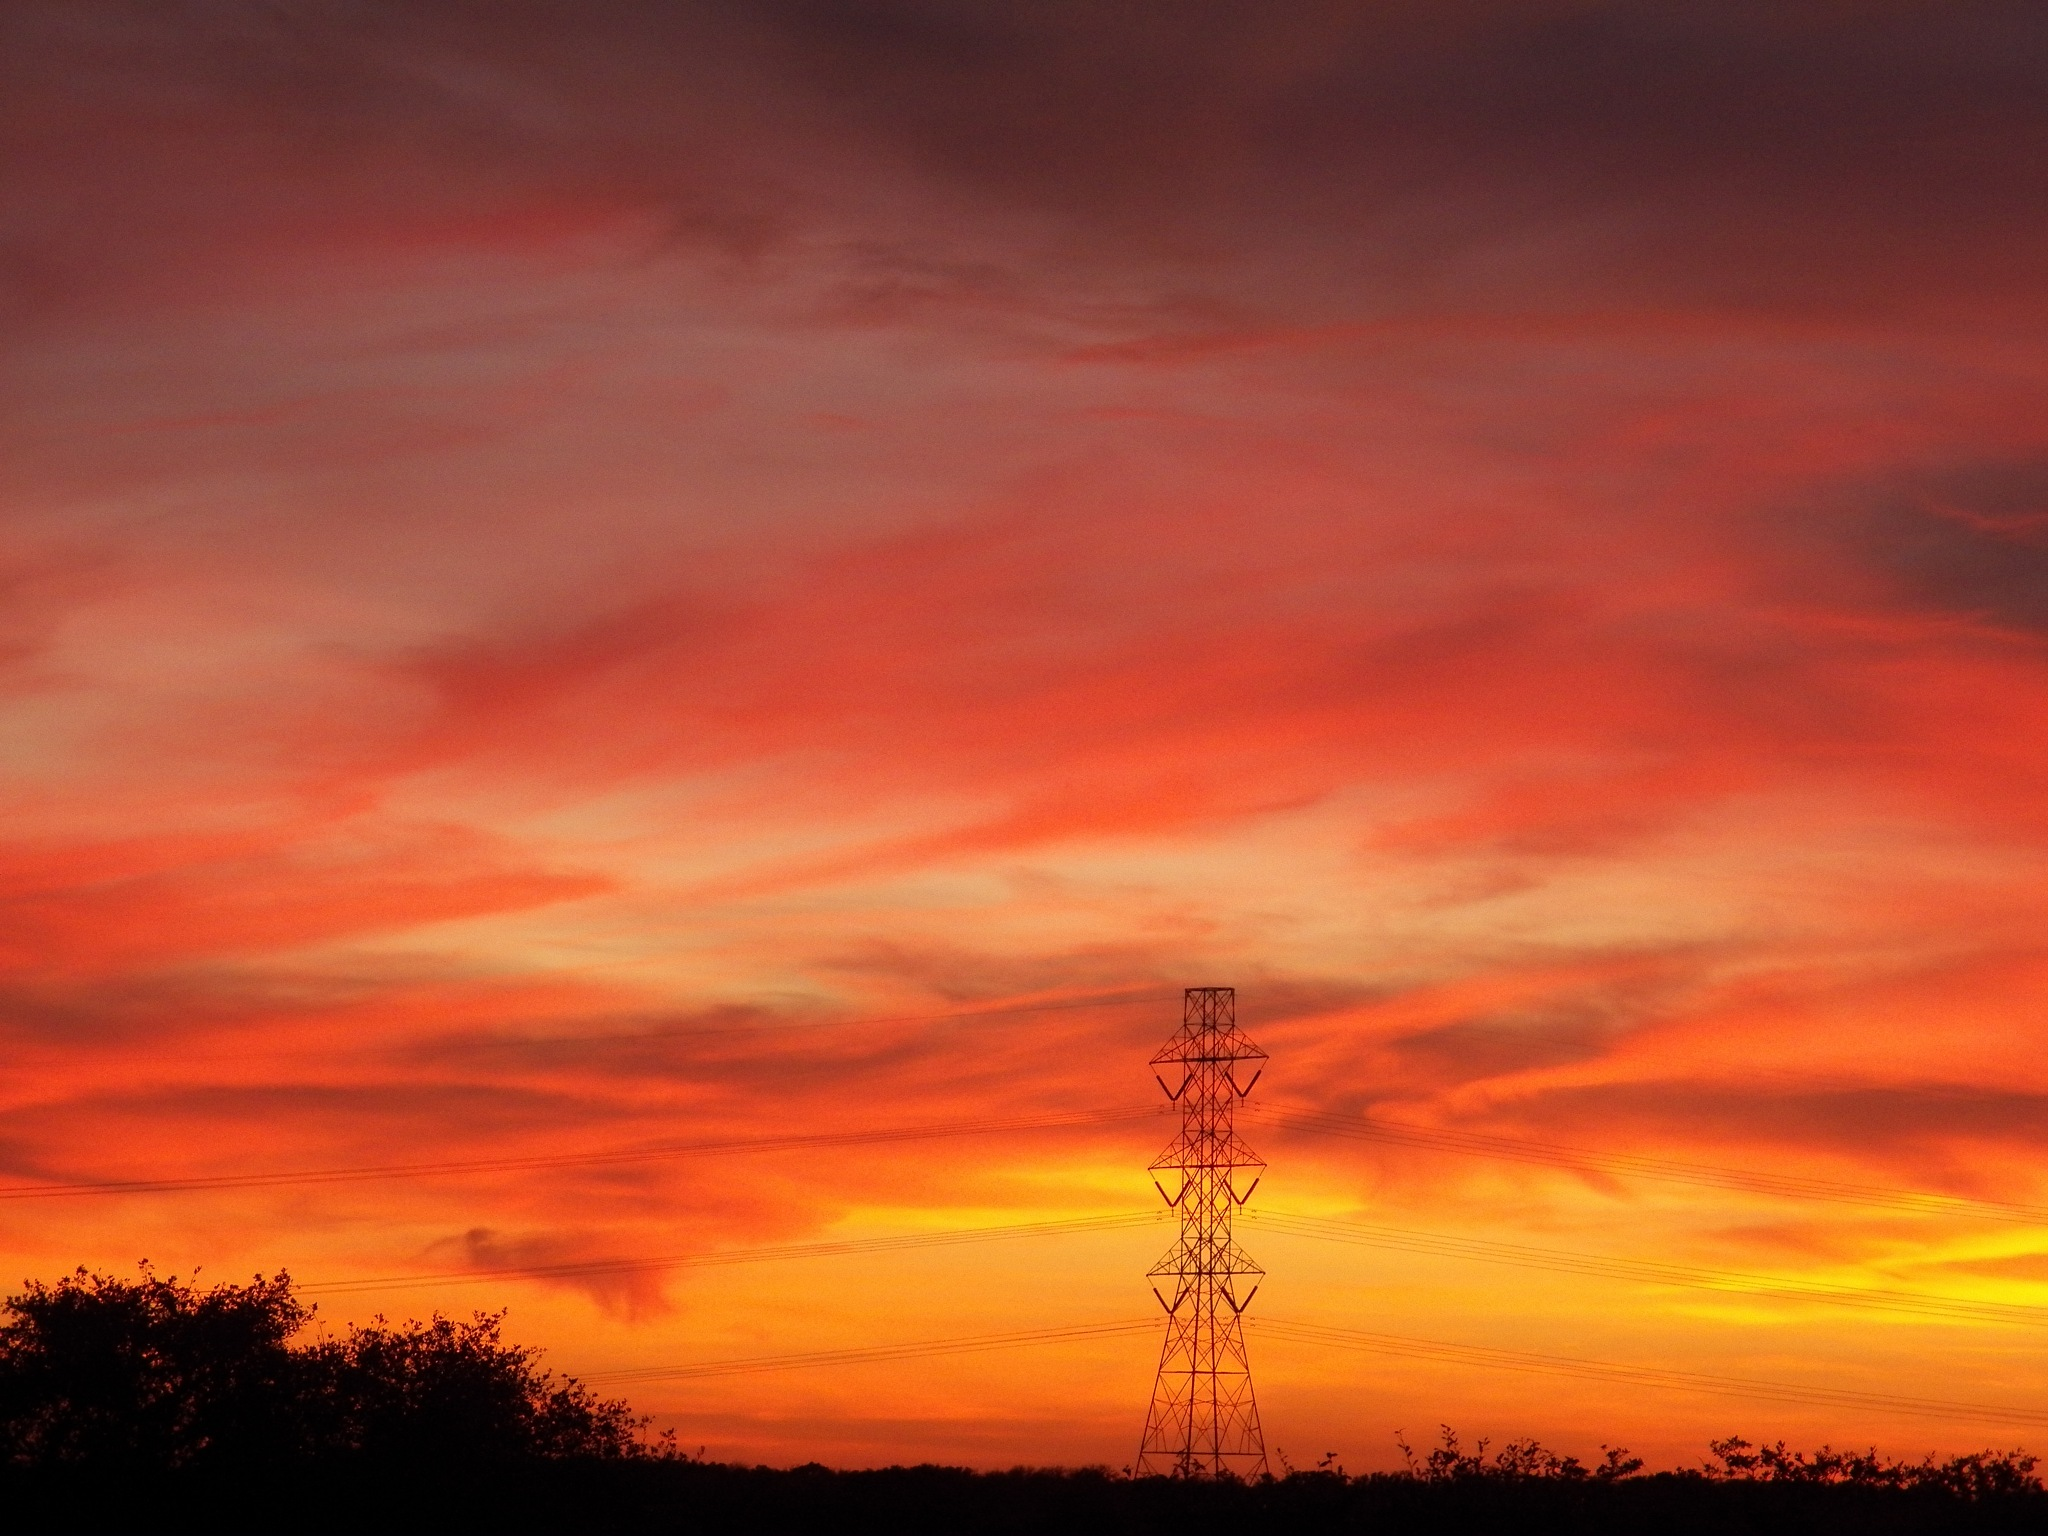 Fire in the Sky by Leslie Rabke